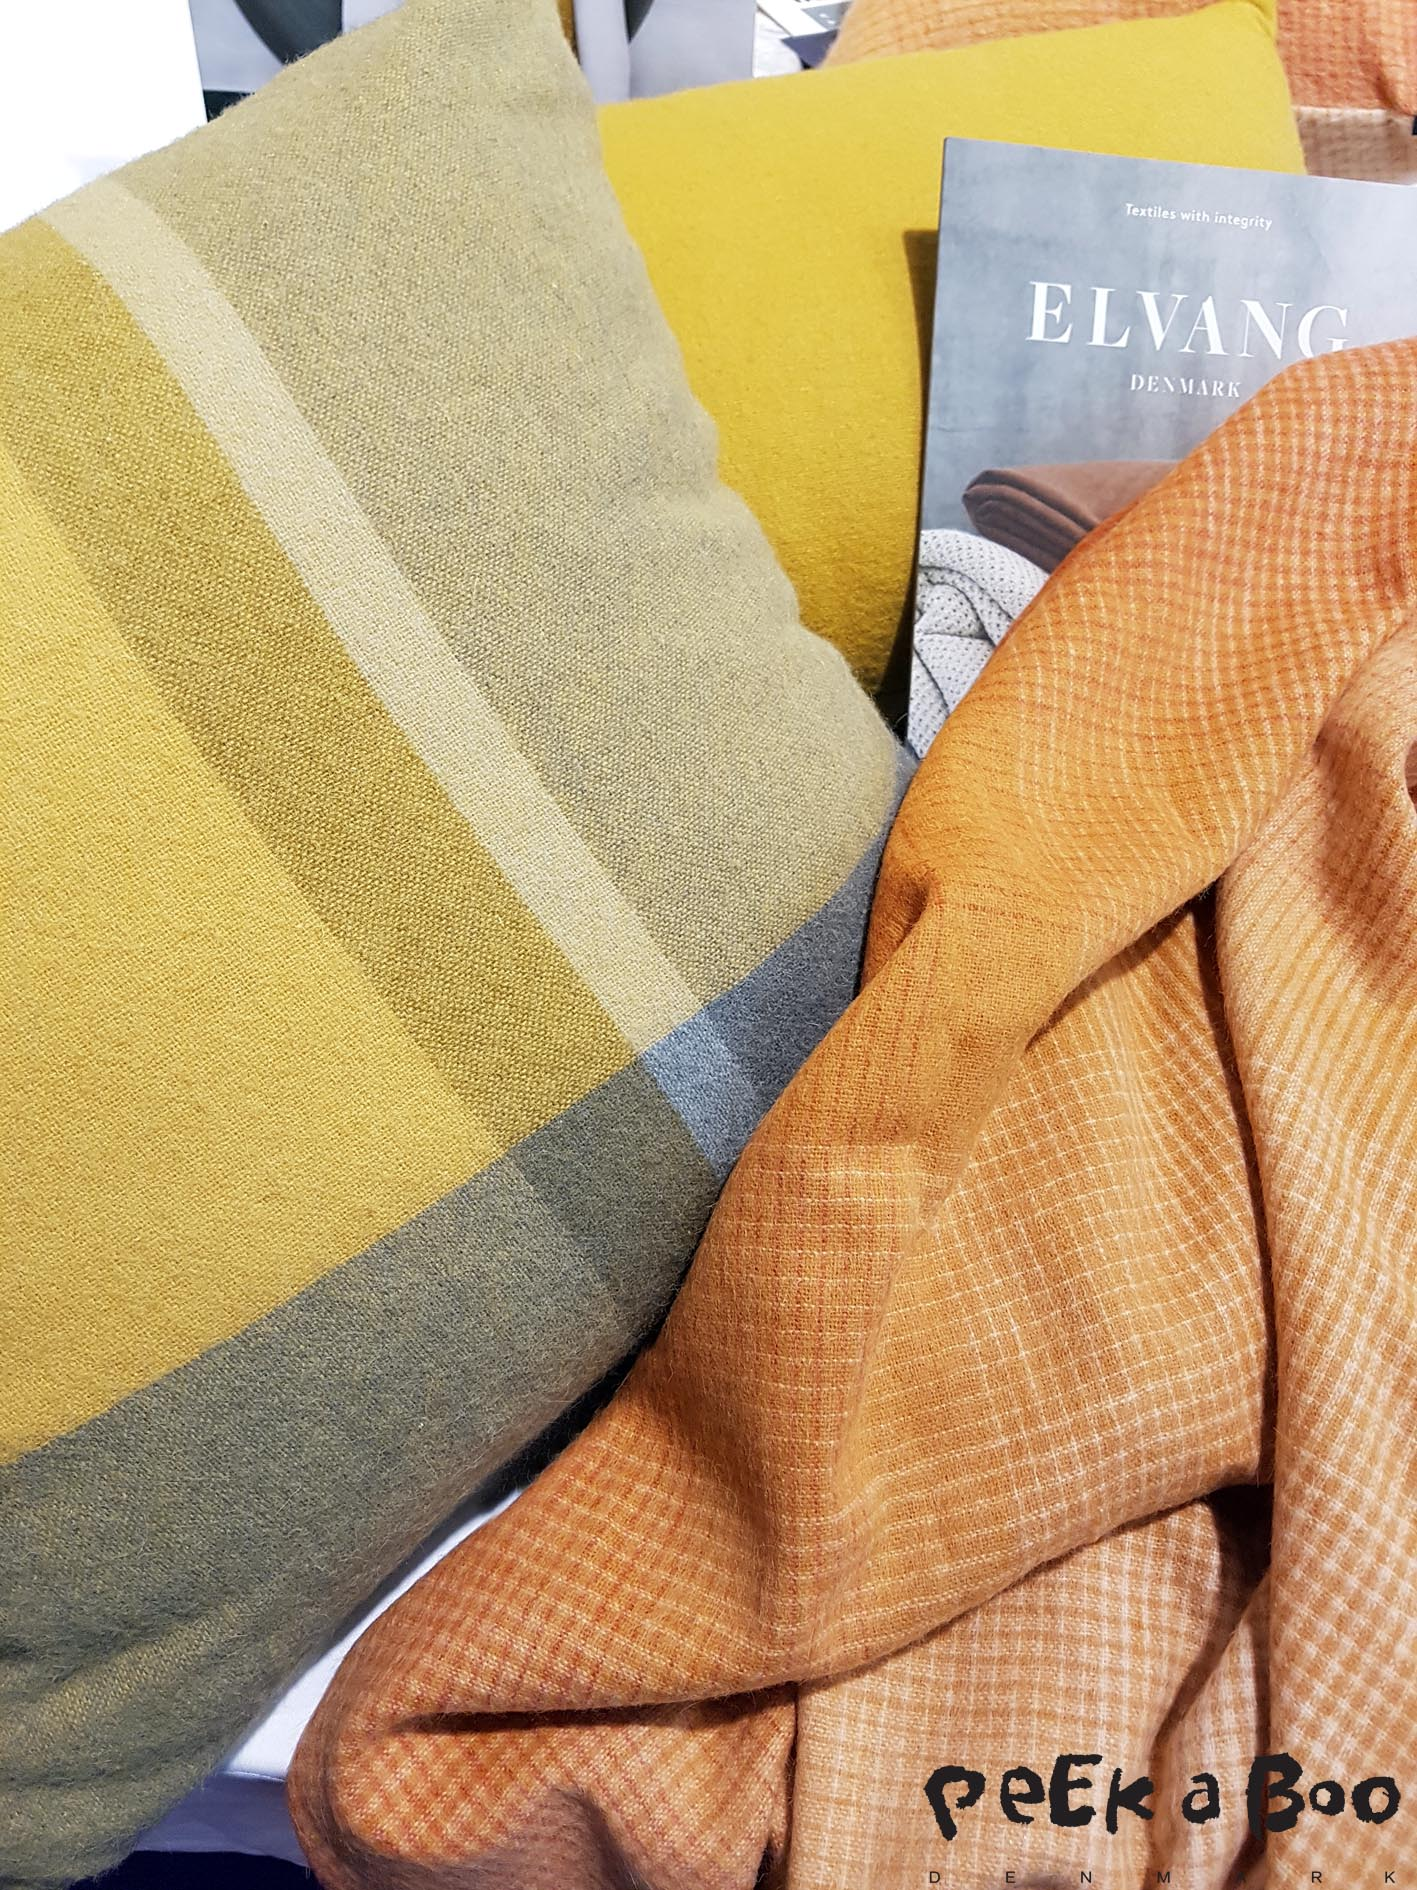 The Danish textile brand Elvang had different variations of the mustard colour woven as lovely soft plaids and cushions. Seen at Tendence in Frankfurt.